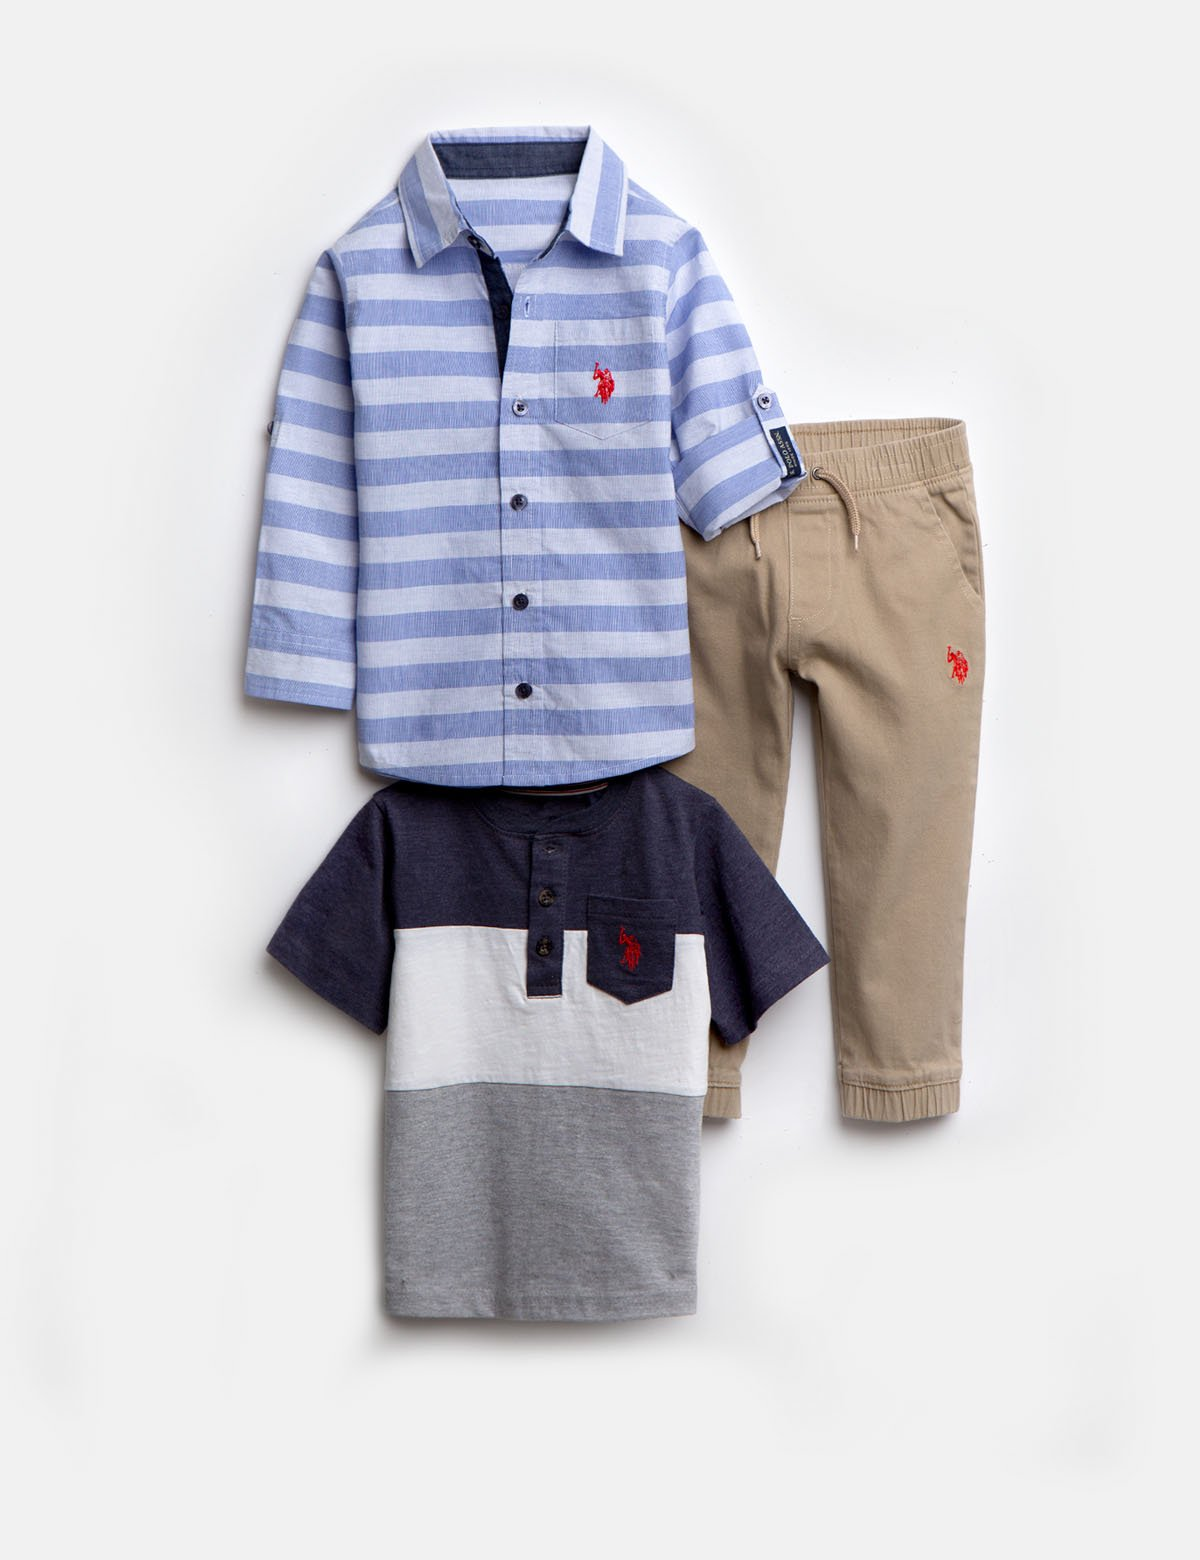 BOYS 3 PIECE SET: SHIRT, TEE & JOGGERS